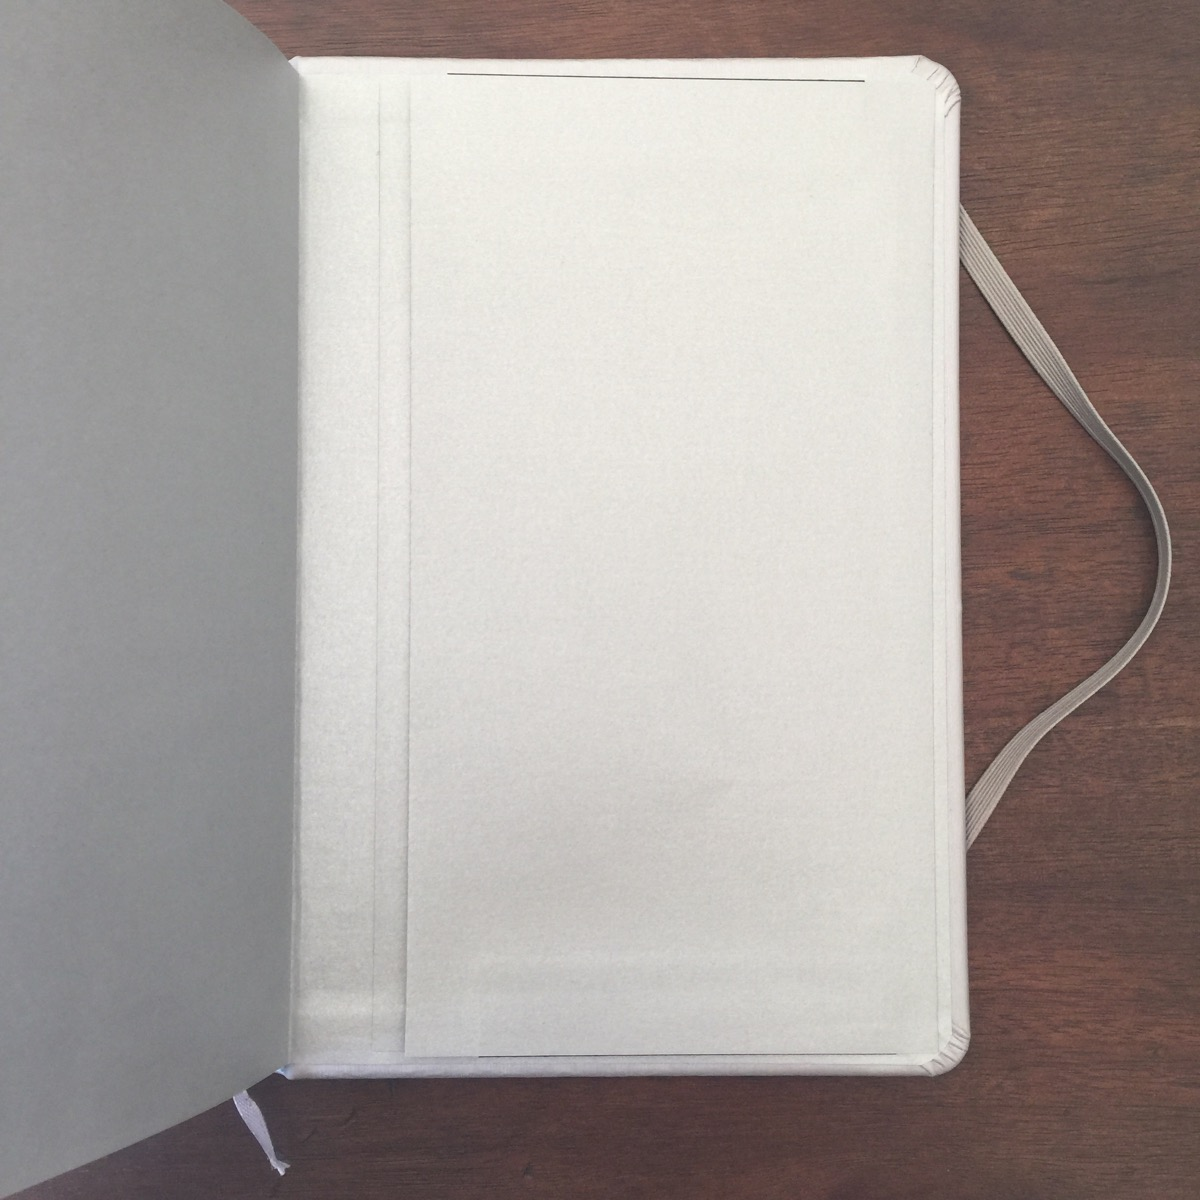 paper review pentulant out a doubt this is a high quality item it is well made and feels luxurious the notebook features all of the bells and whistles hard cover